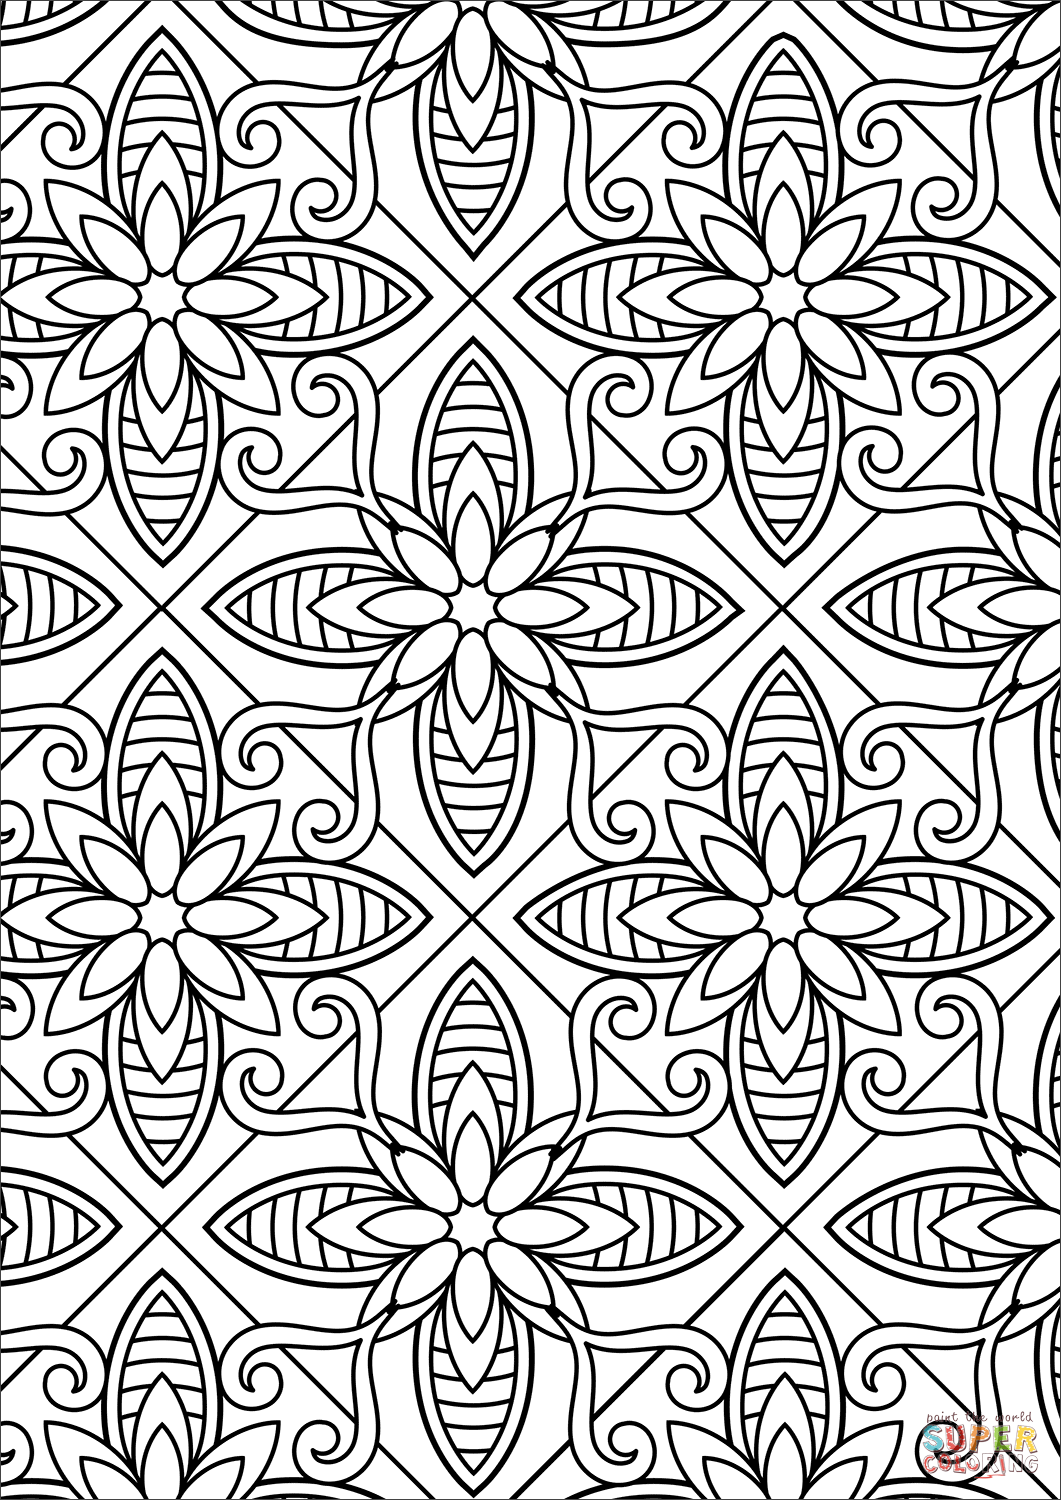 pattern coloring books 50 free square patterns kaleidoscope adult coloring pattern coloring books